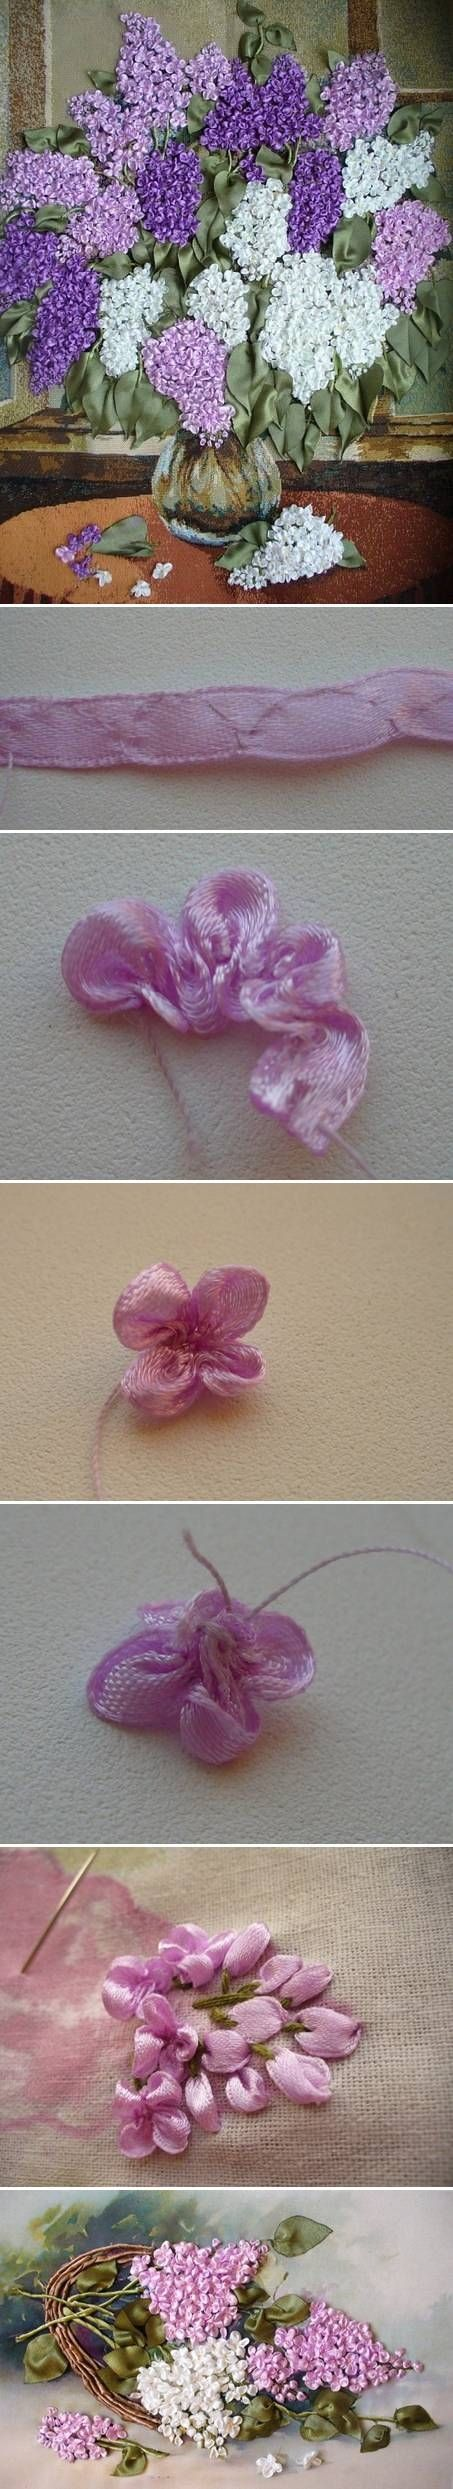 DIY Fabric Lilac Flowers. too cool! they look so real!